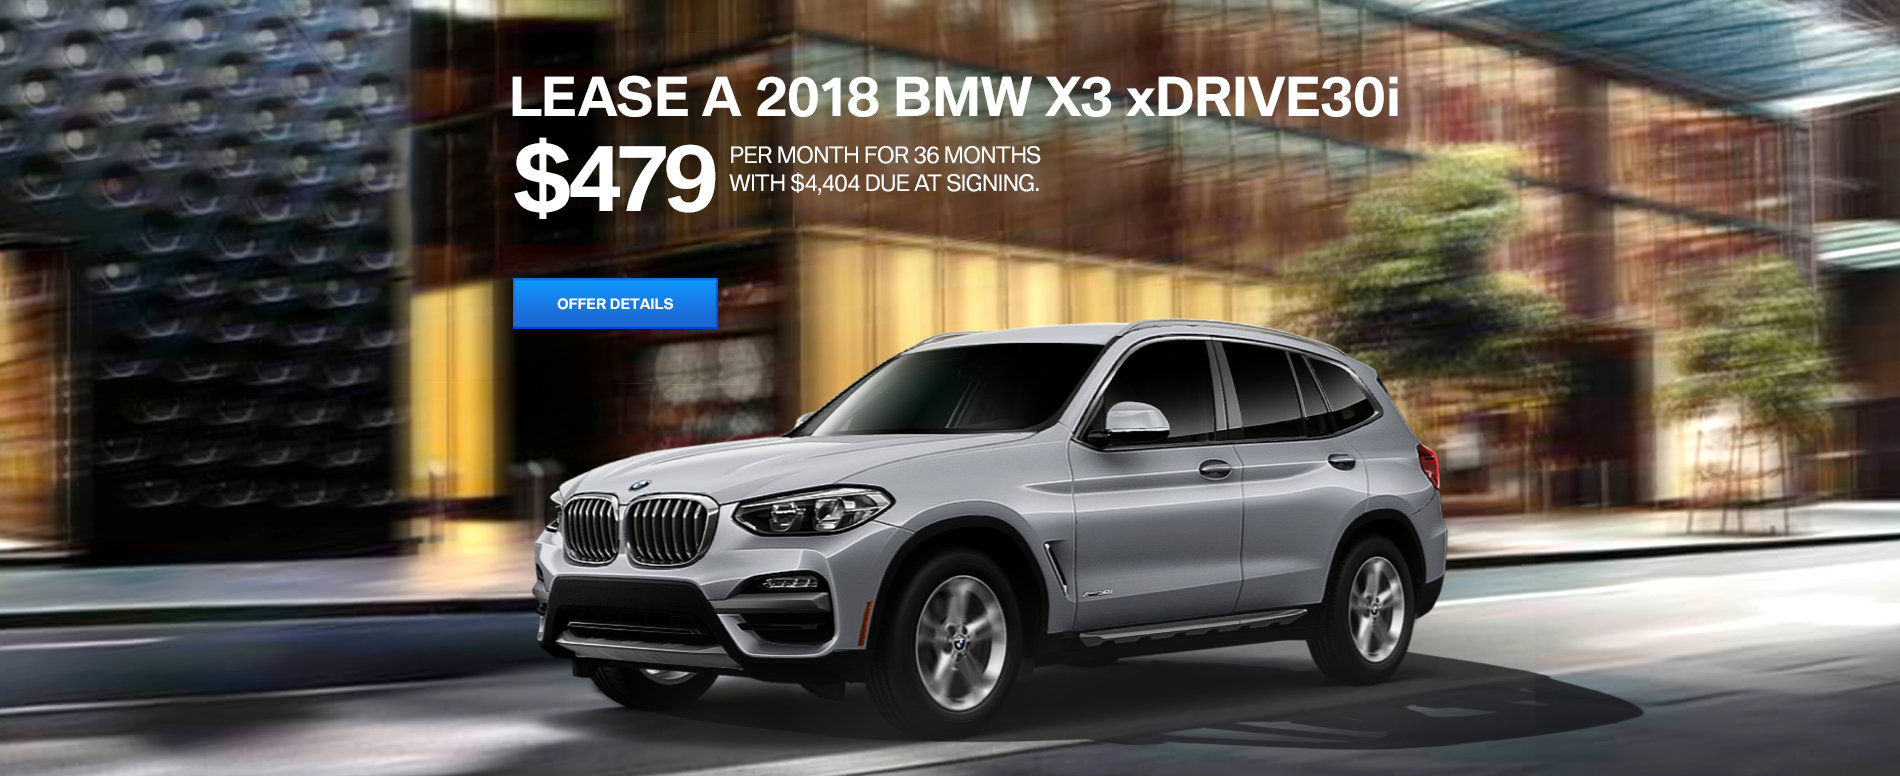 LEASE A 2018 X3 xDRIVE30i FOR $479 /MO FOR 36 MONTHS WITH $4,404